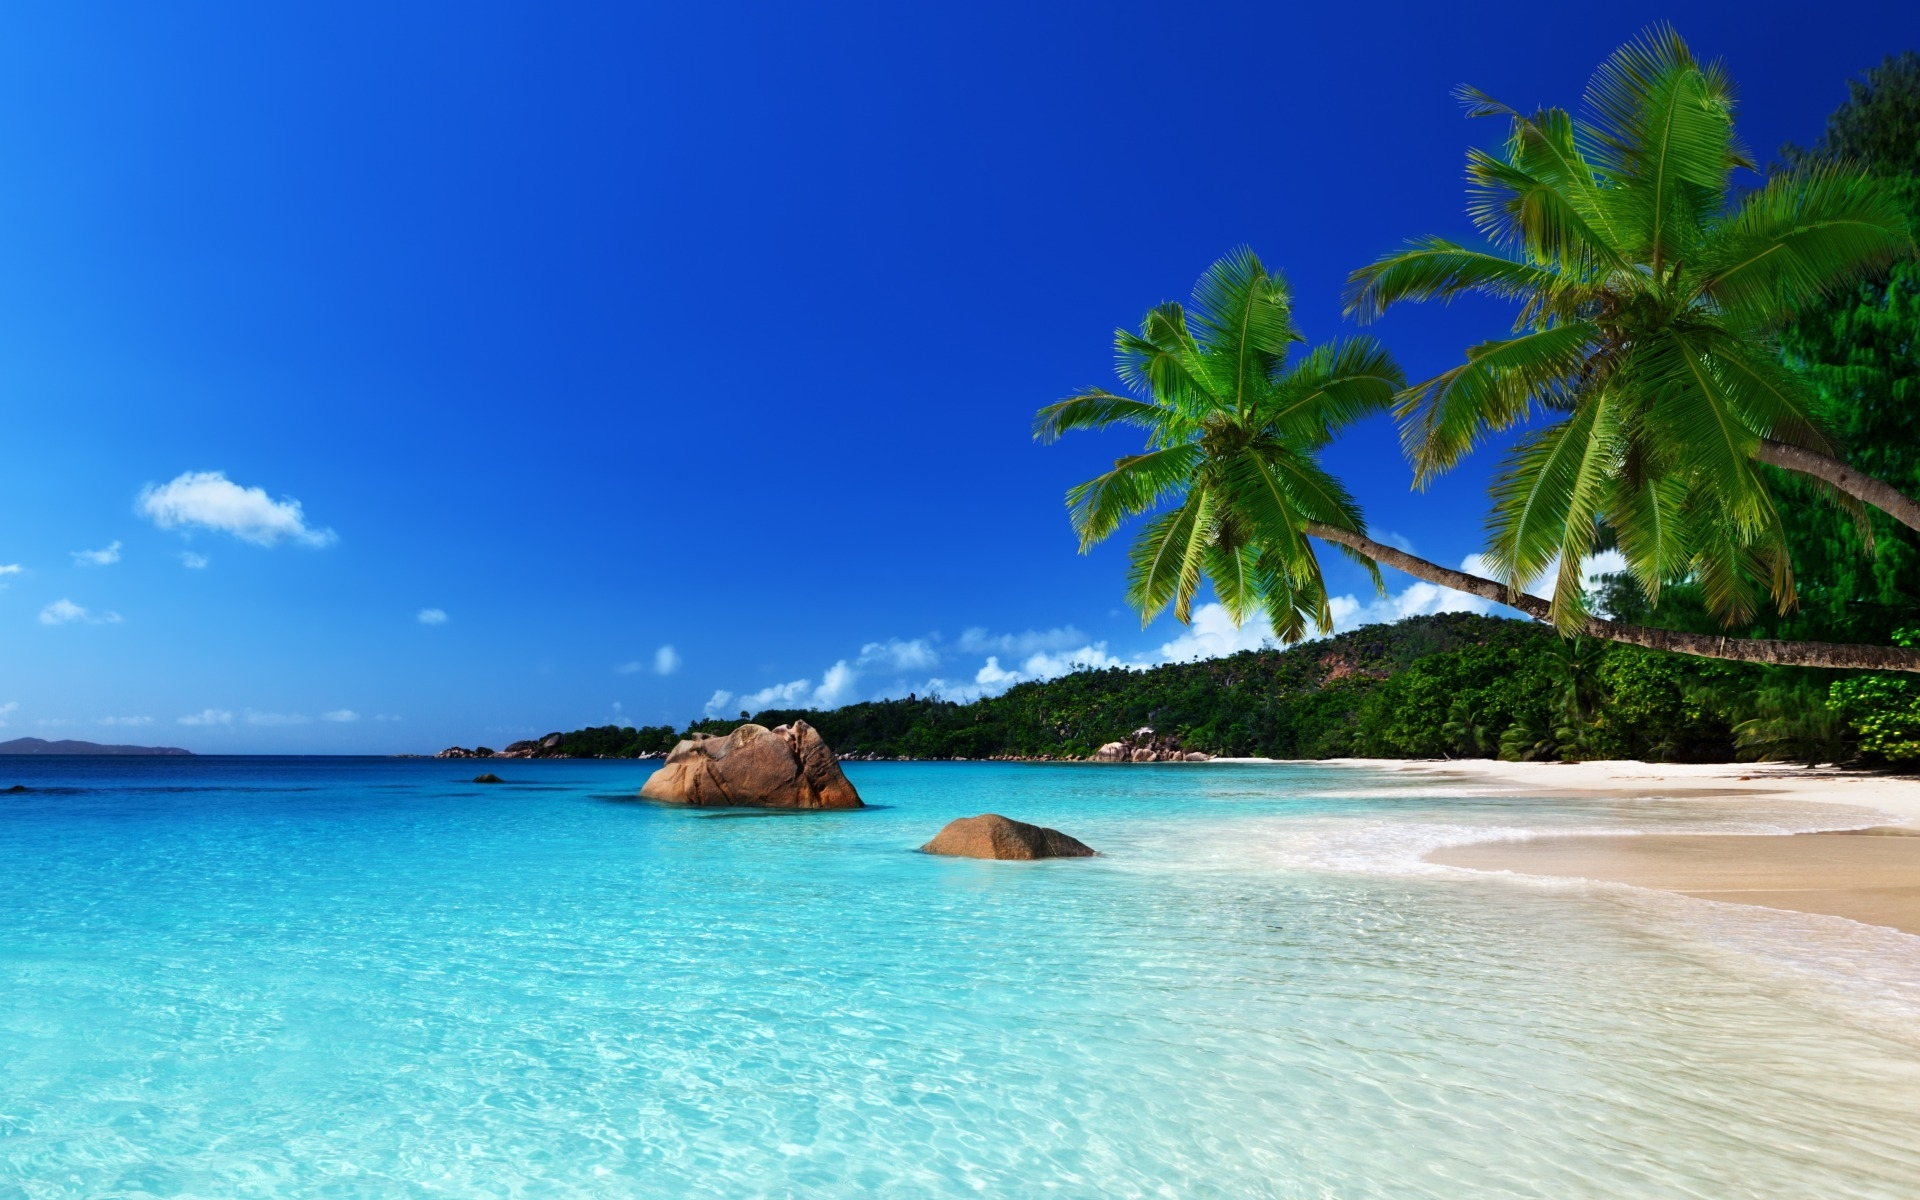 tropical island Computer Wallpapers Desktop Backgrounds 1920x1200